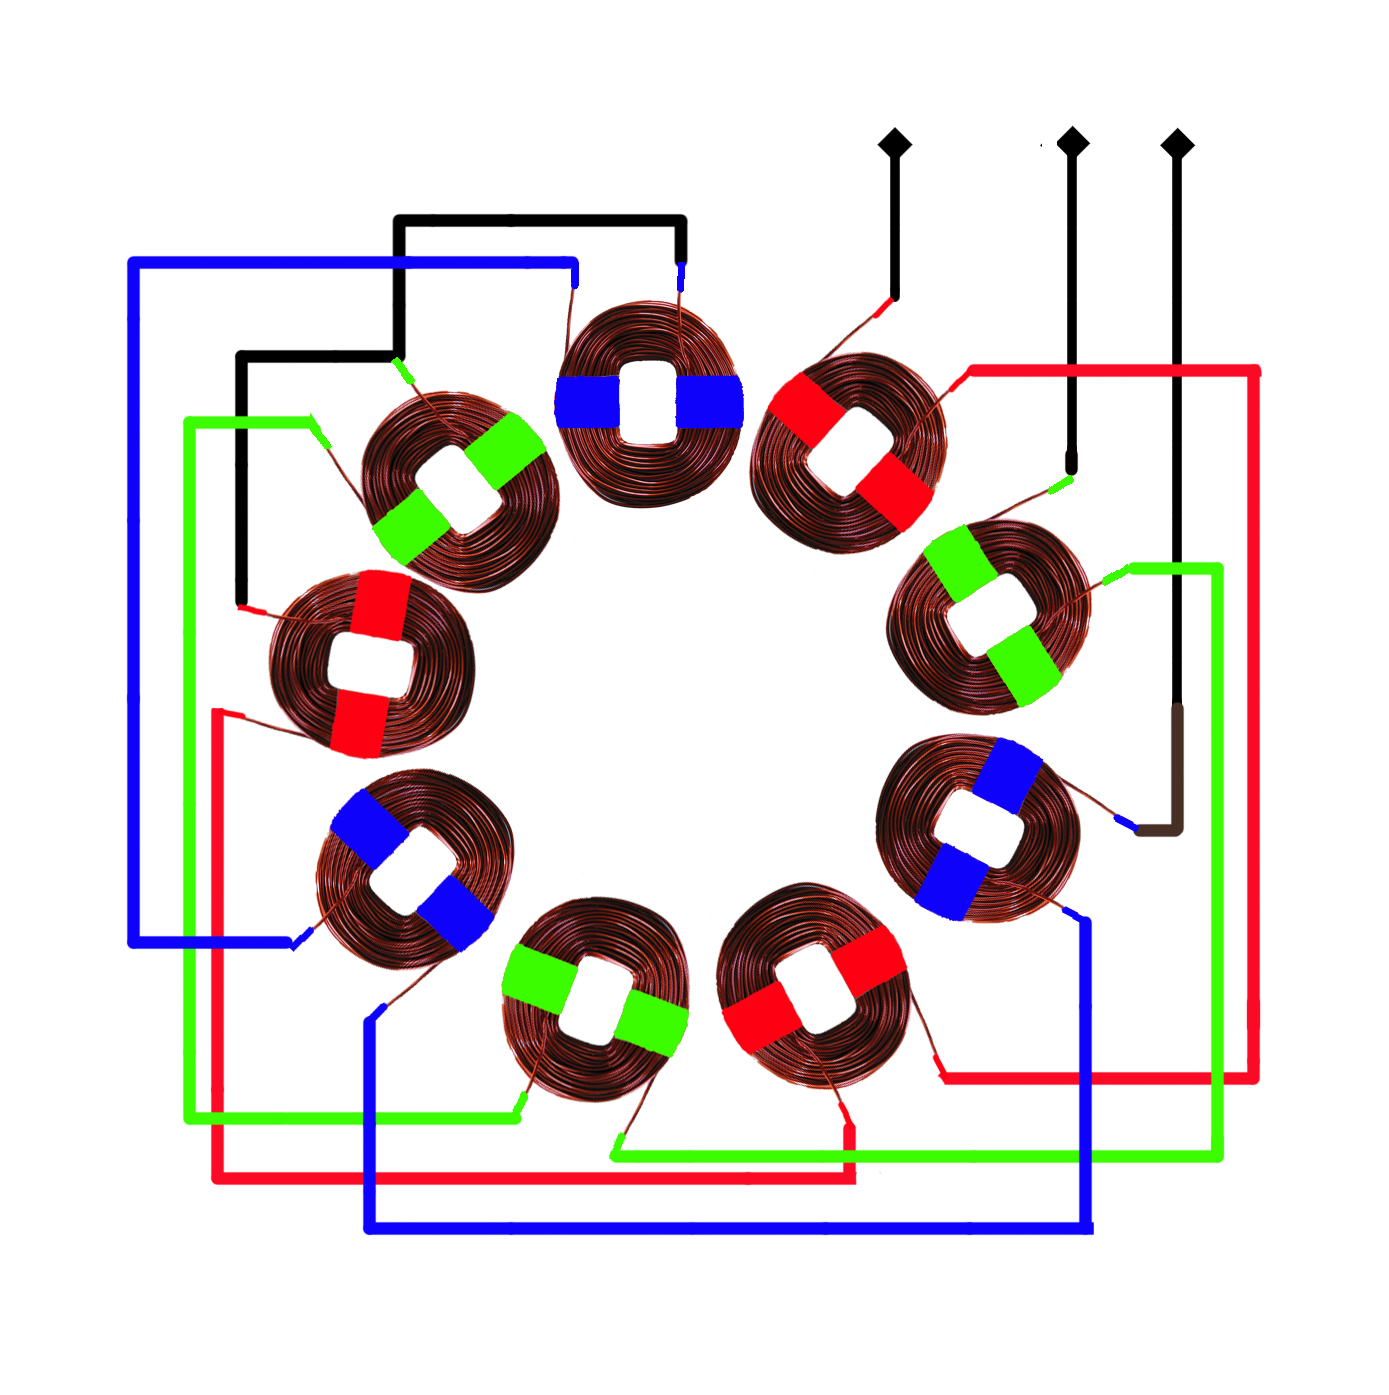 coils91 3 phase stator visualisation hugh piggott's blog 3 phase generator wiring diagram at soozxer.org